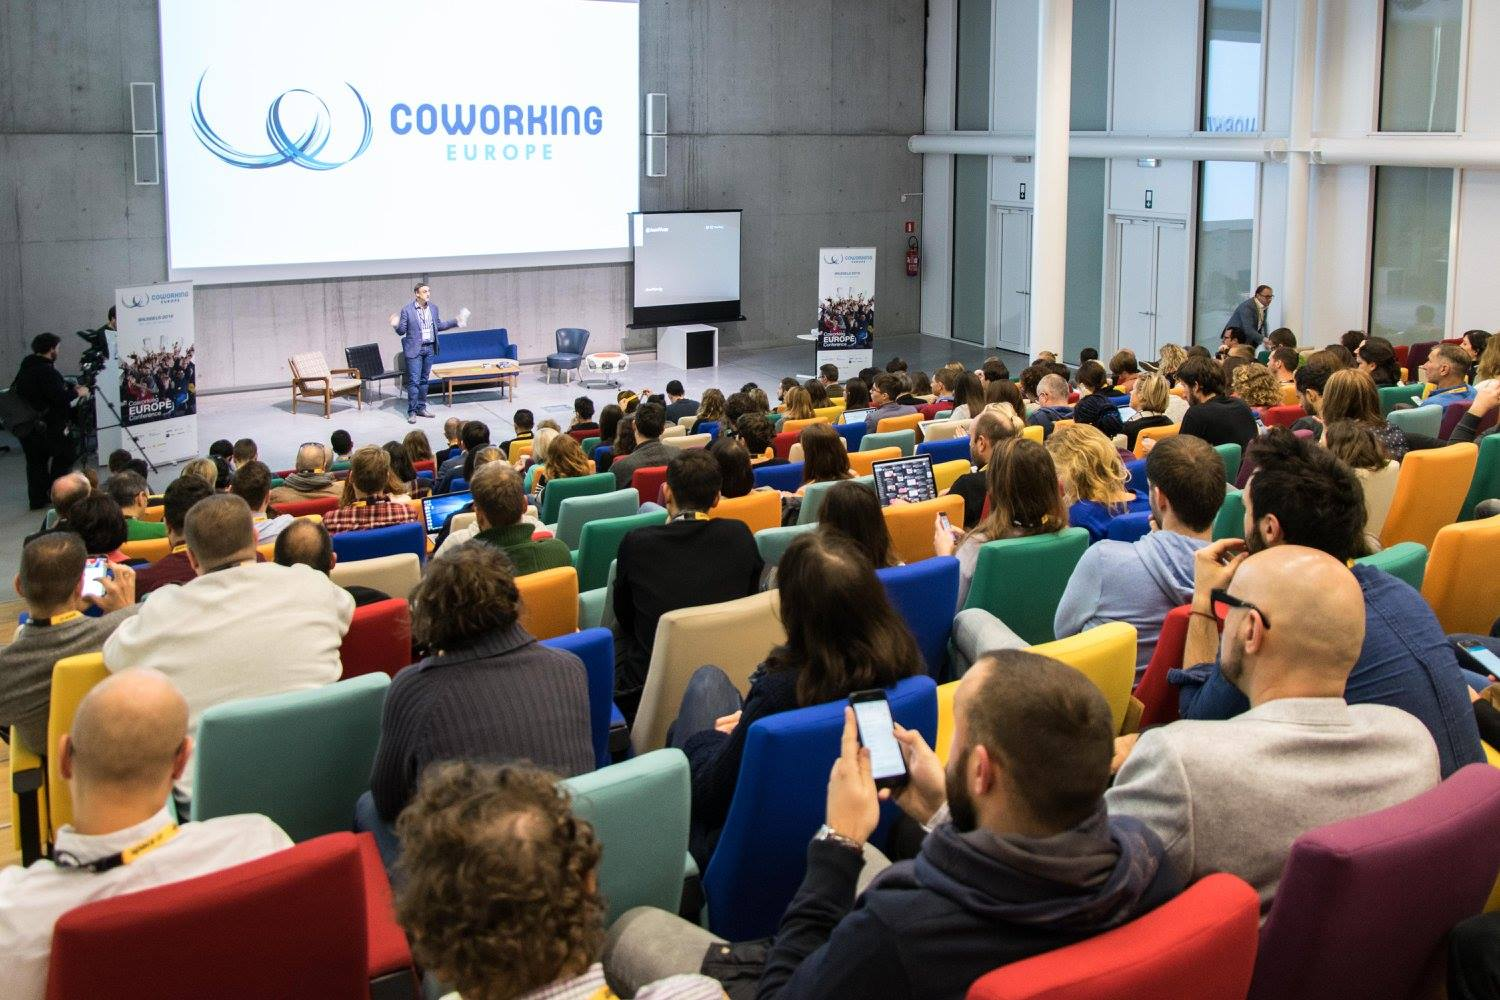 Some thoughts on Coworking Europe Conference 2016